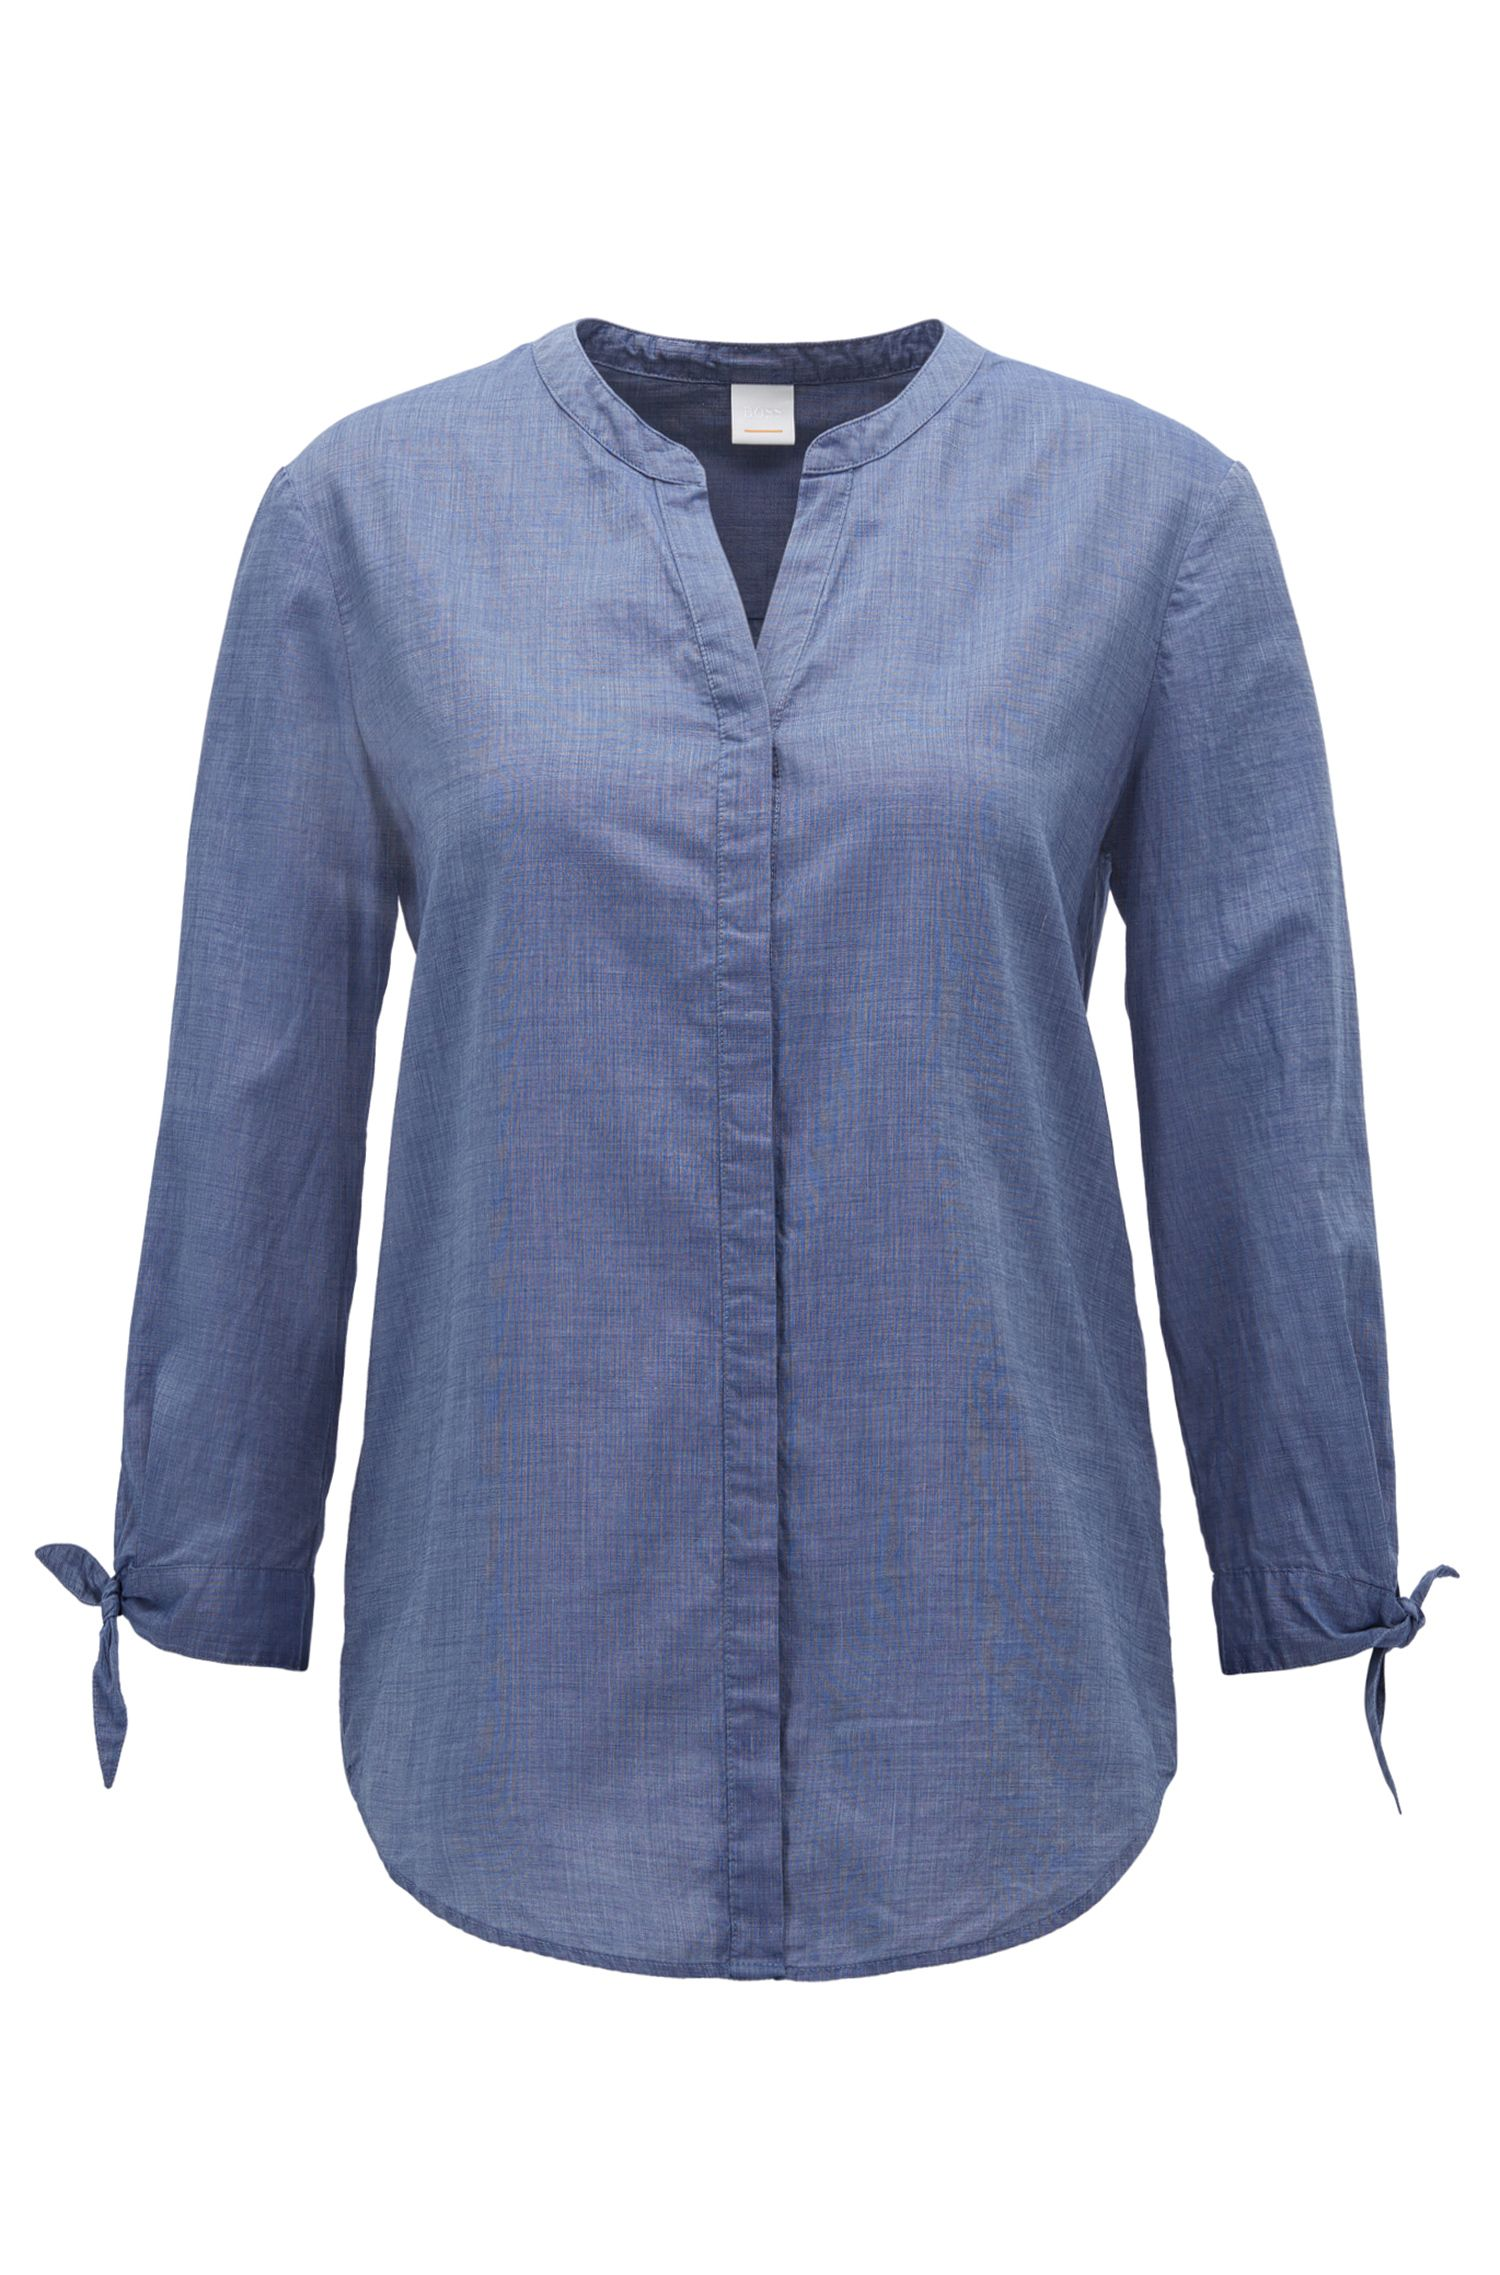 Relaxed-fit blouse in een chambray van een katoenmix